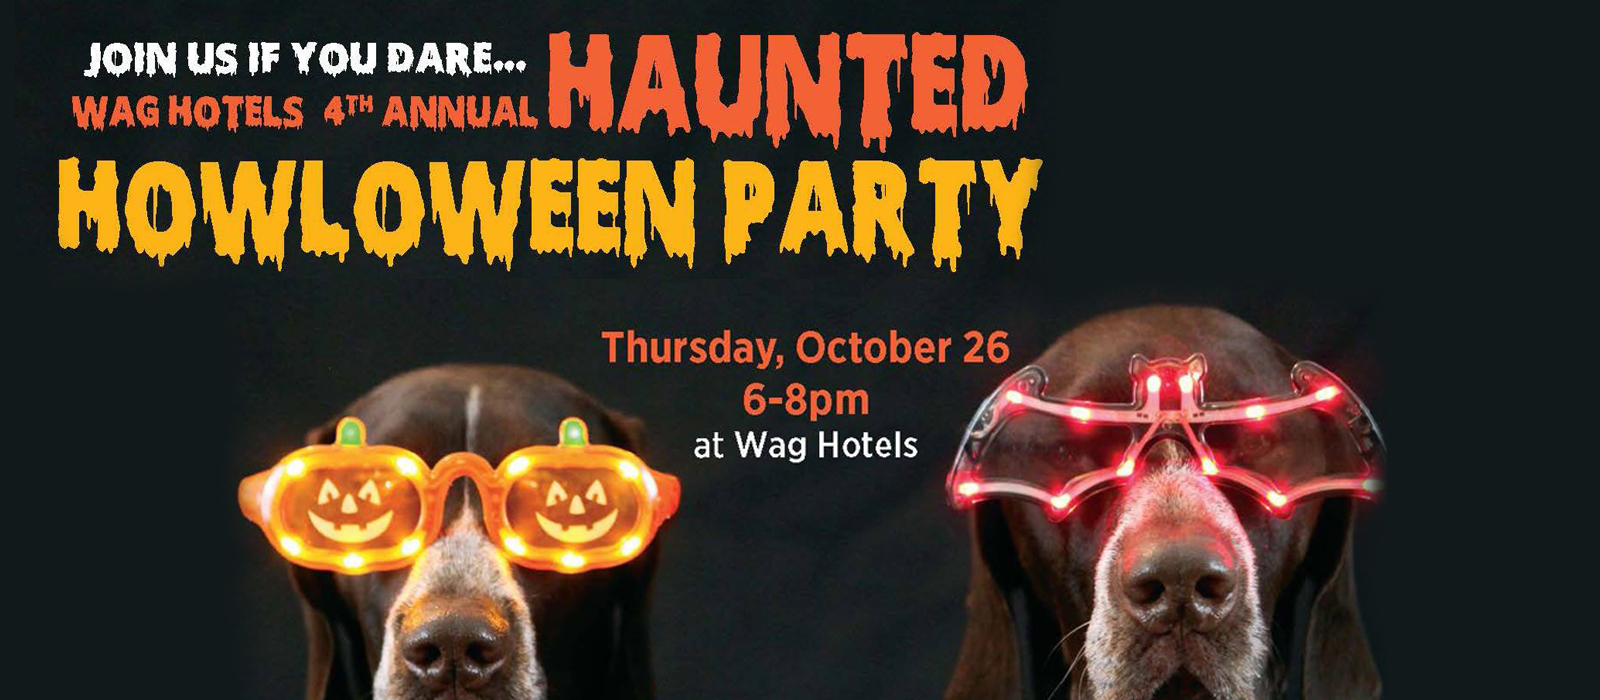 Fourth Annual Haunted Howloween Wag Hotels Oakland